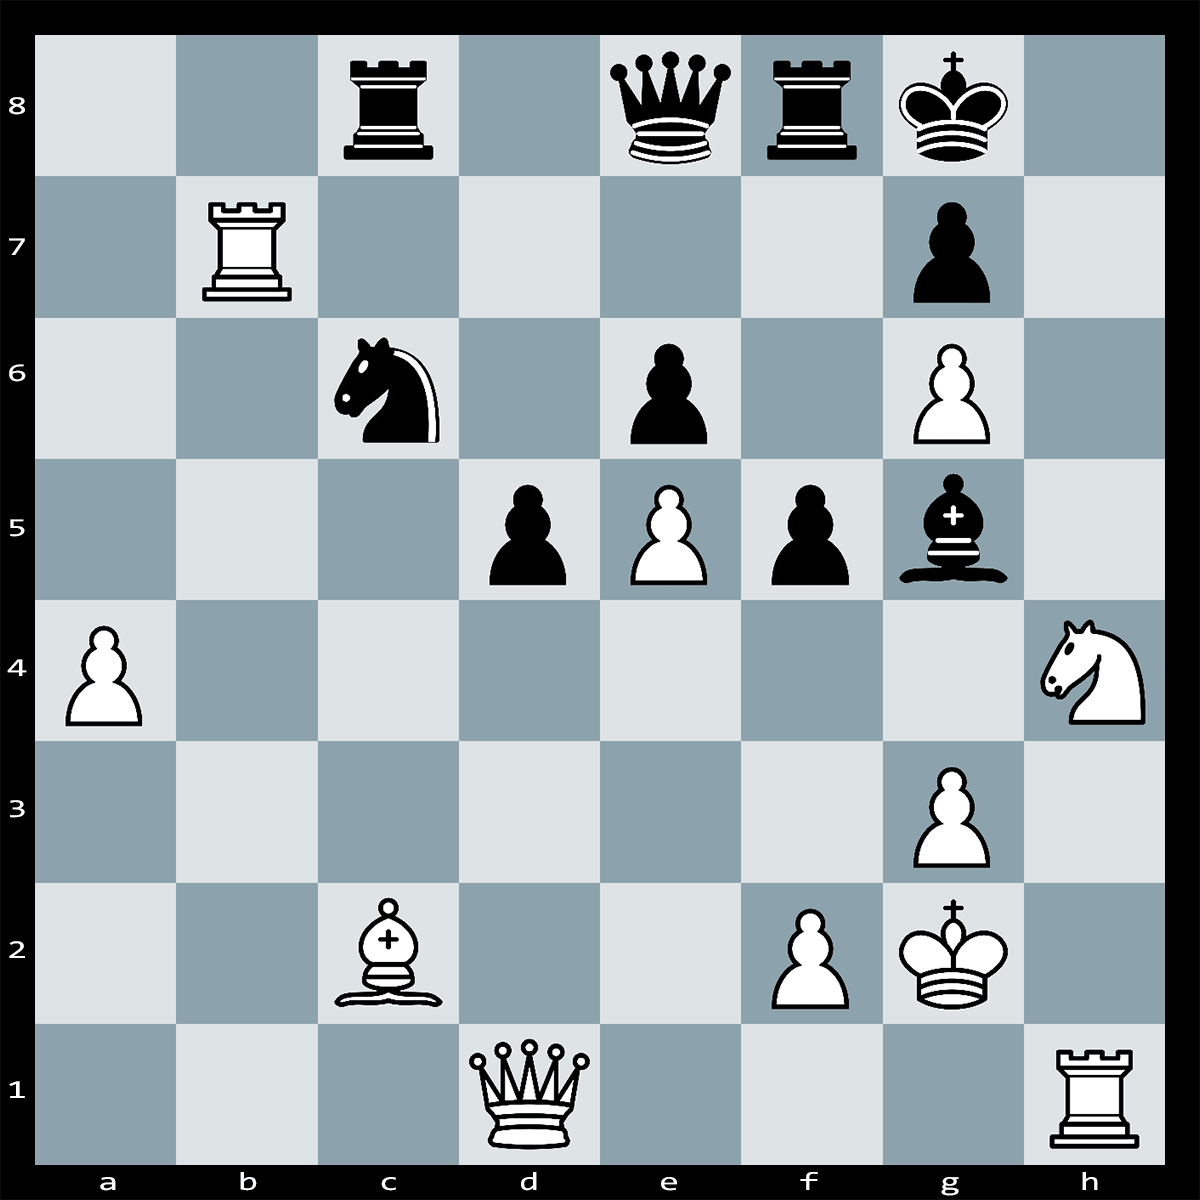 Chess Puzzle #343 | In this position White can force checkmate in five moves. Can you see how this is achieved?